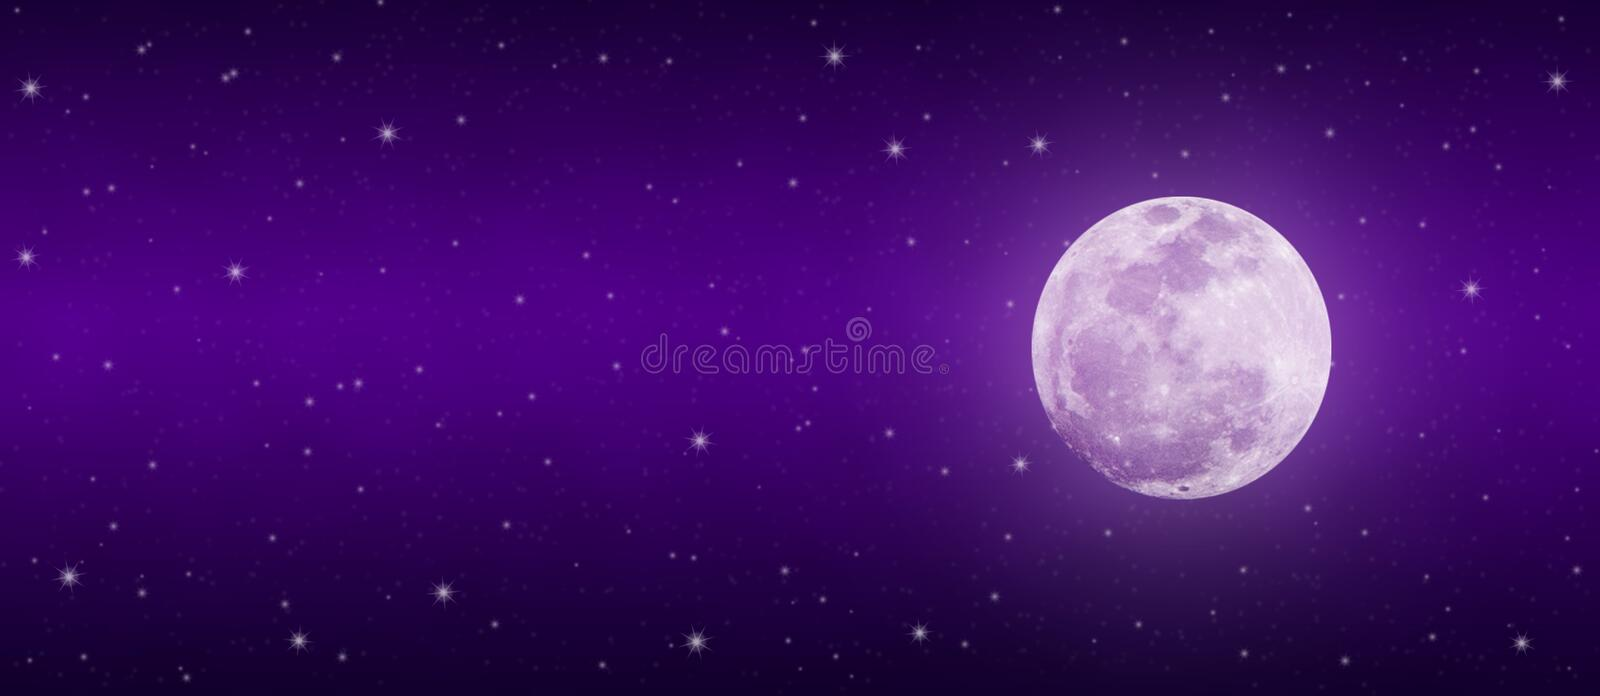 Bright Full Moon and Twinkle Stars in Dark Purple Night Sky Banner stock photos